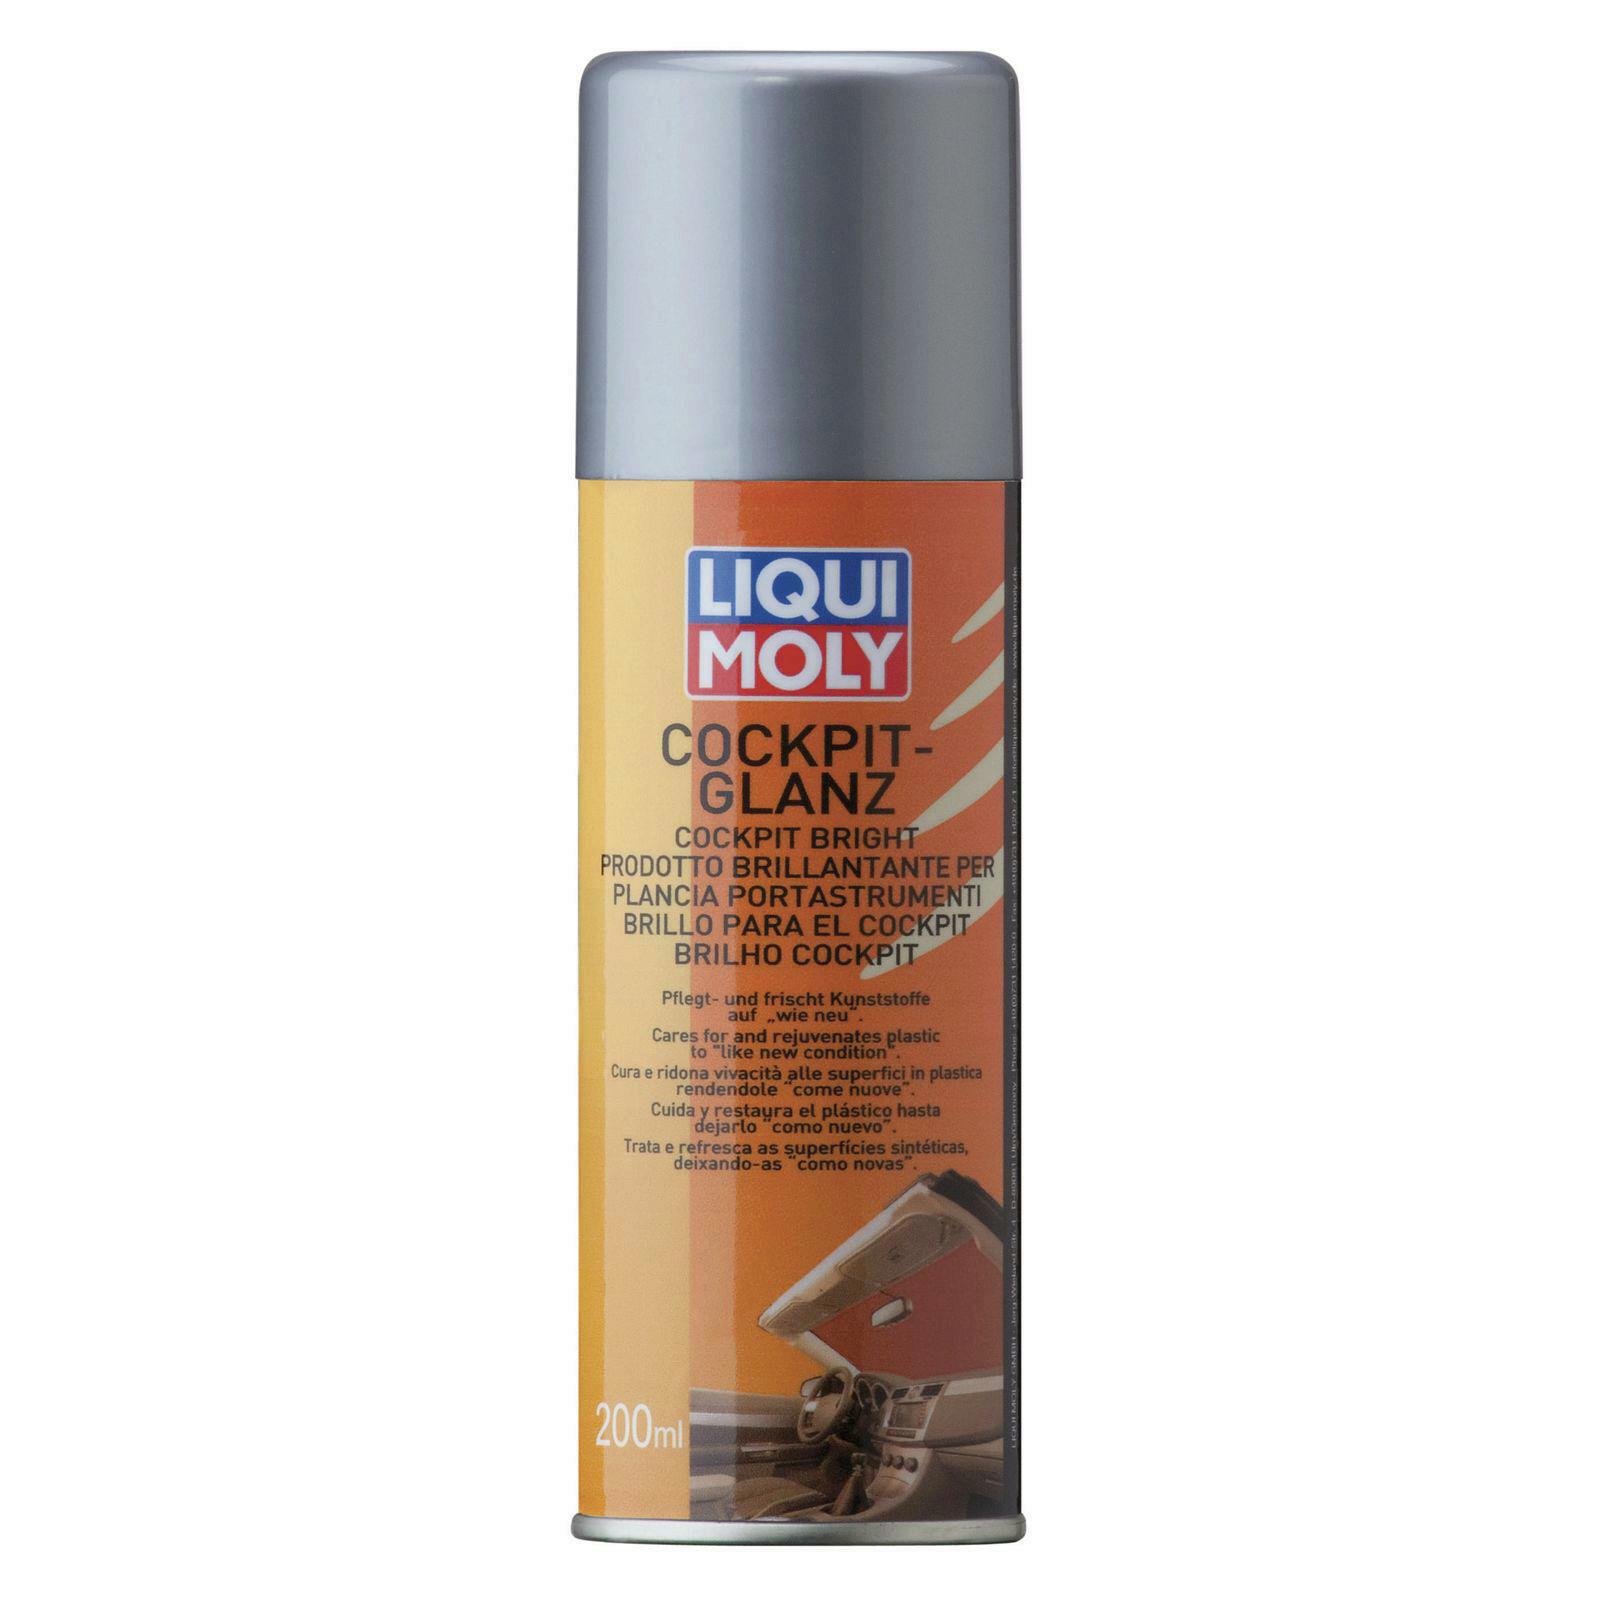 Liqui Moly Cockpit Glanz 200ml